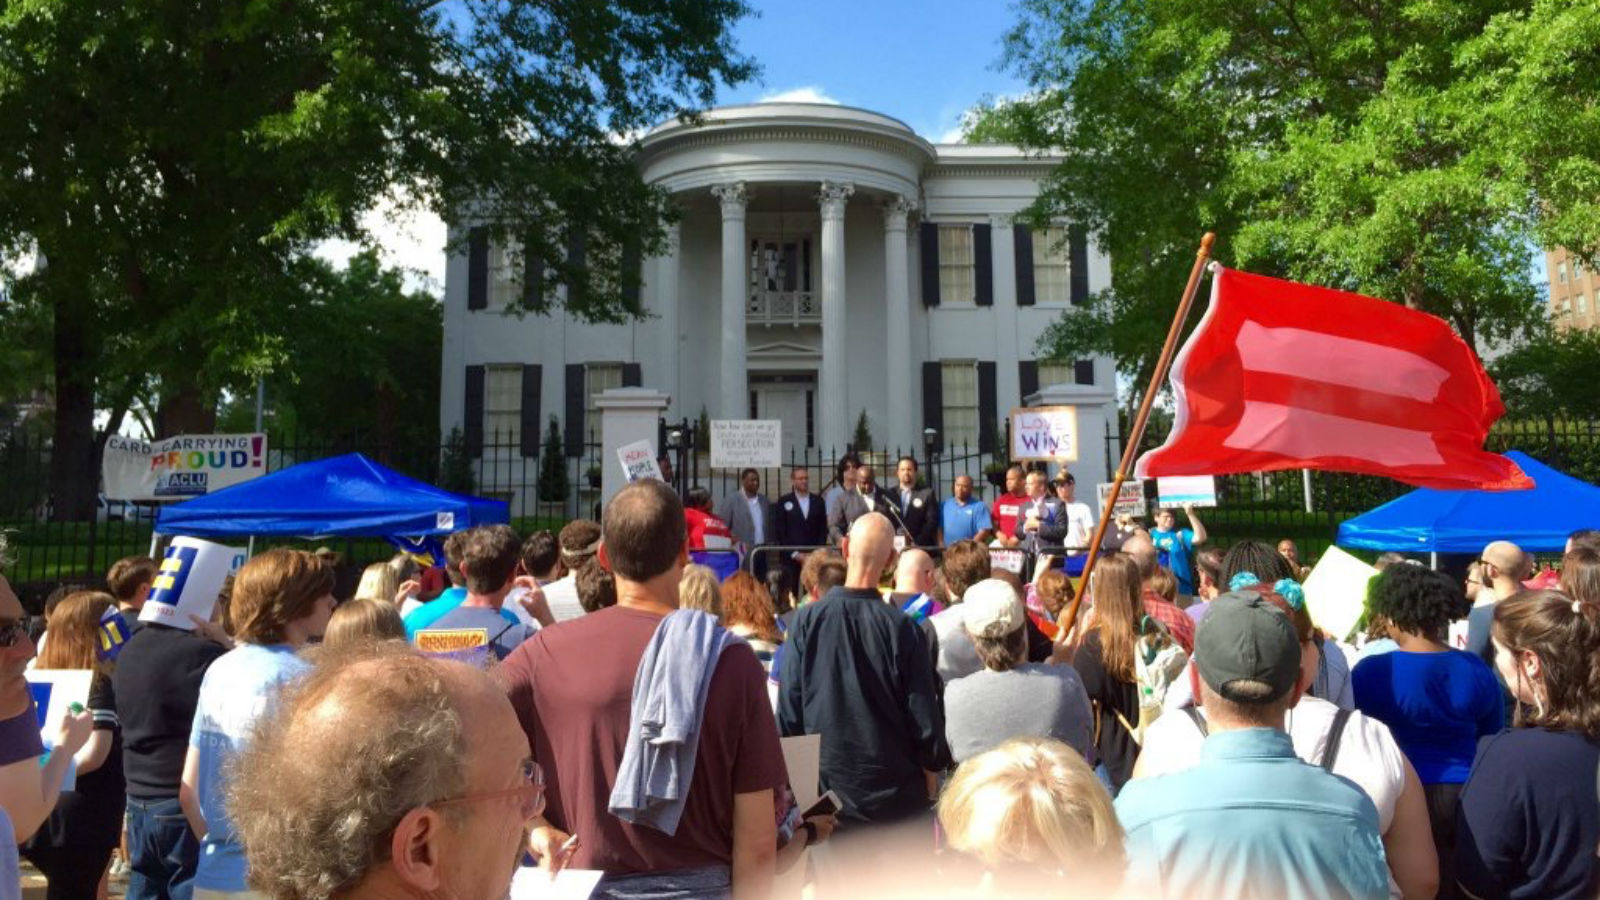 aa9541361d Hundreds Rally in MS to Demand Repeal of Discriminatory H.B. 1523 ...